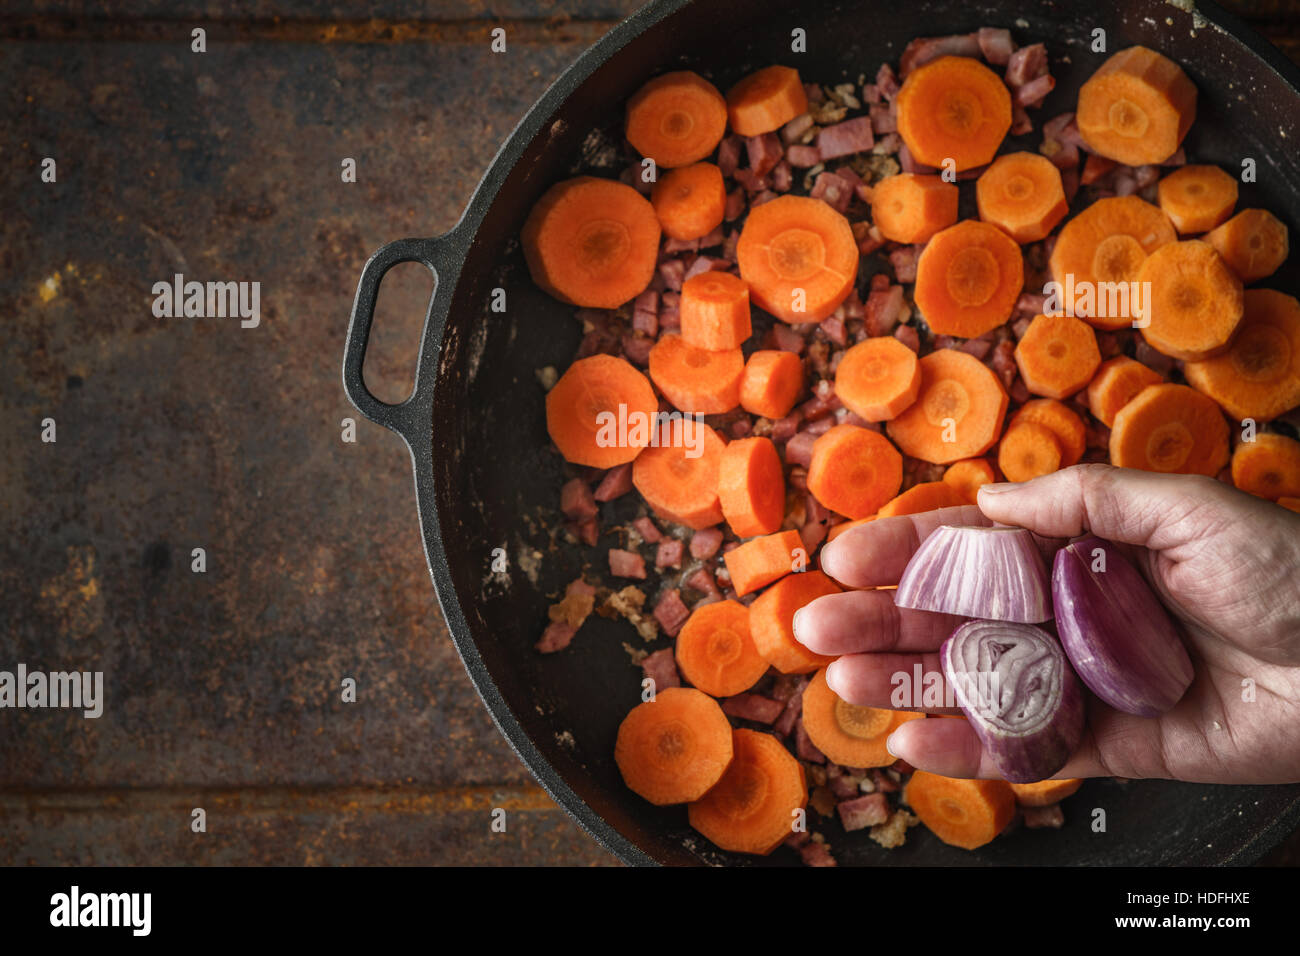 Adding shallot in the pan with bacon and carrots top view - Stock Image